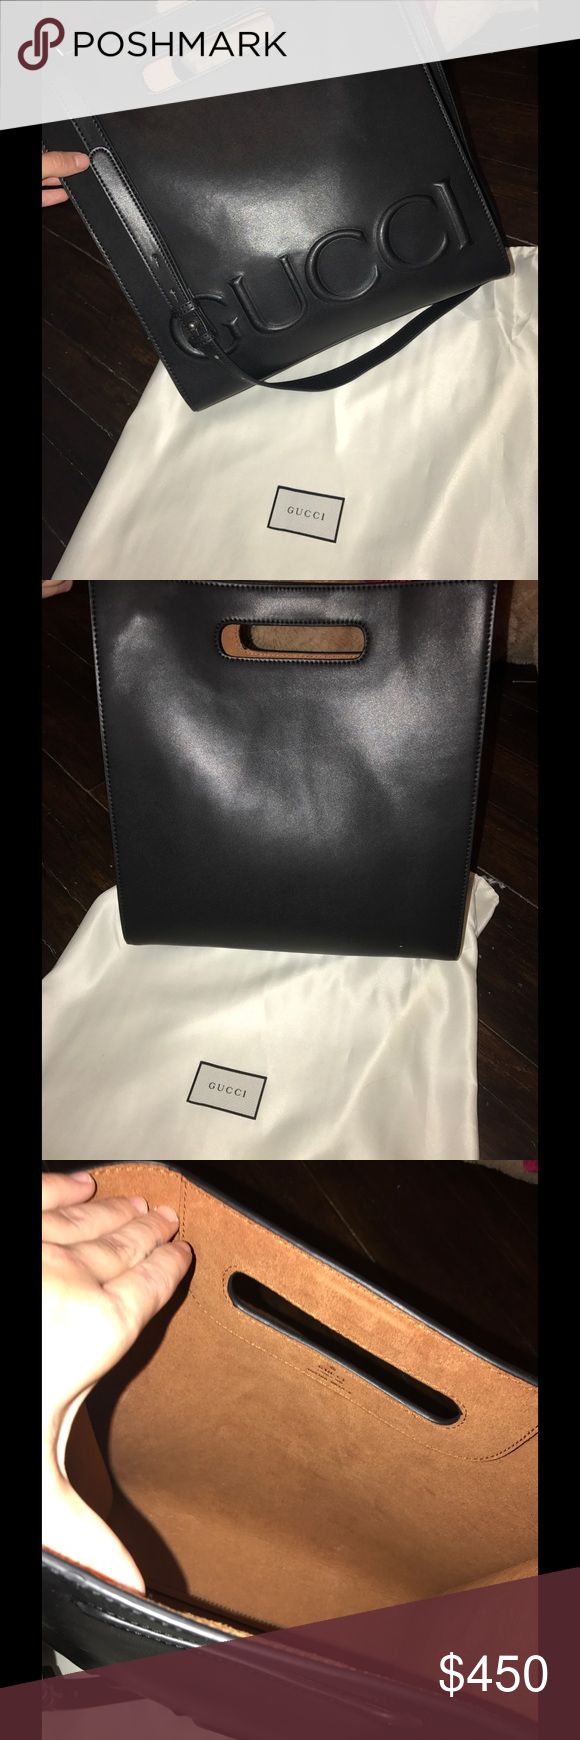 73acd72ea2a39b Gucci XL leather tote bag Gucci XL leather tote bag with strap and dust bag.  Worn only two times, no signs of wear. Real leather, best high quality.